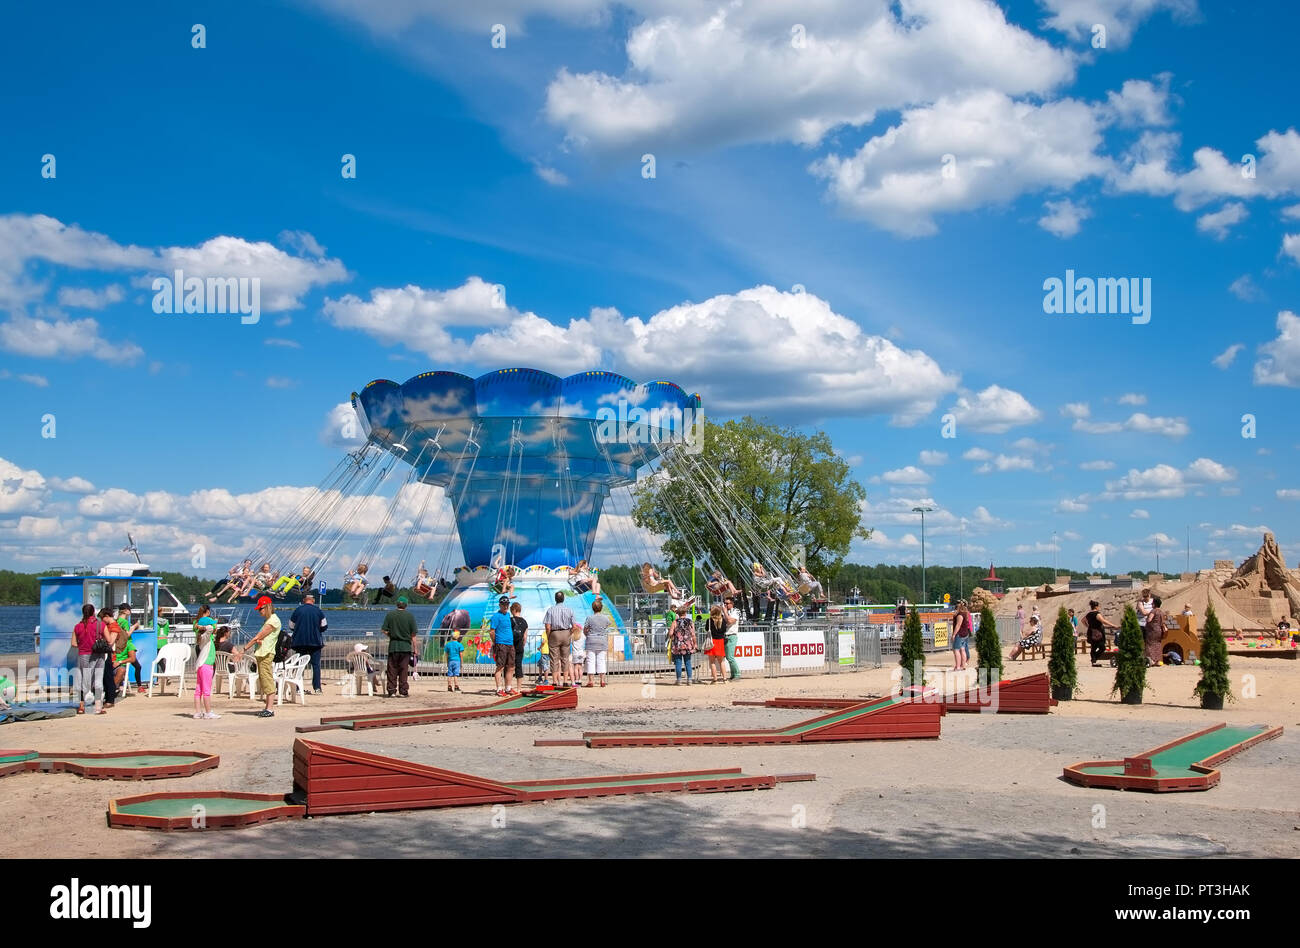 LAPPEENRANTA, FINLAND - JUNE 15, 2016: Adults look at the kids ride the attraction near Saimaa Lake. On the right side is Knight Sandcastle Stock Photo